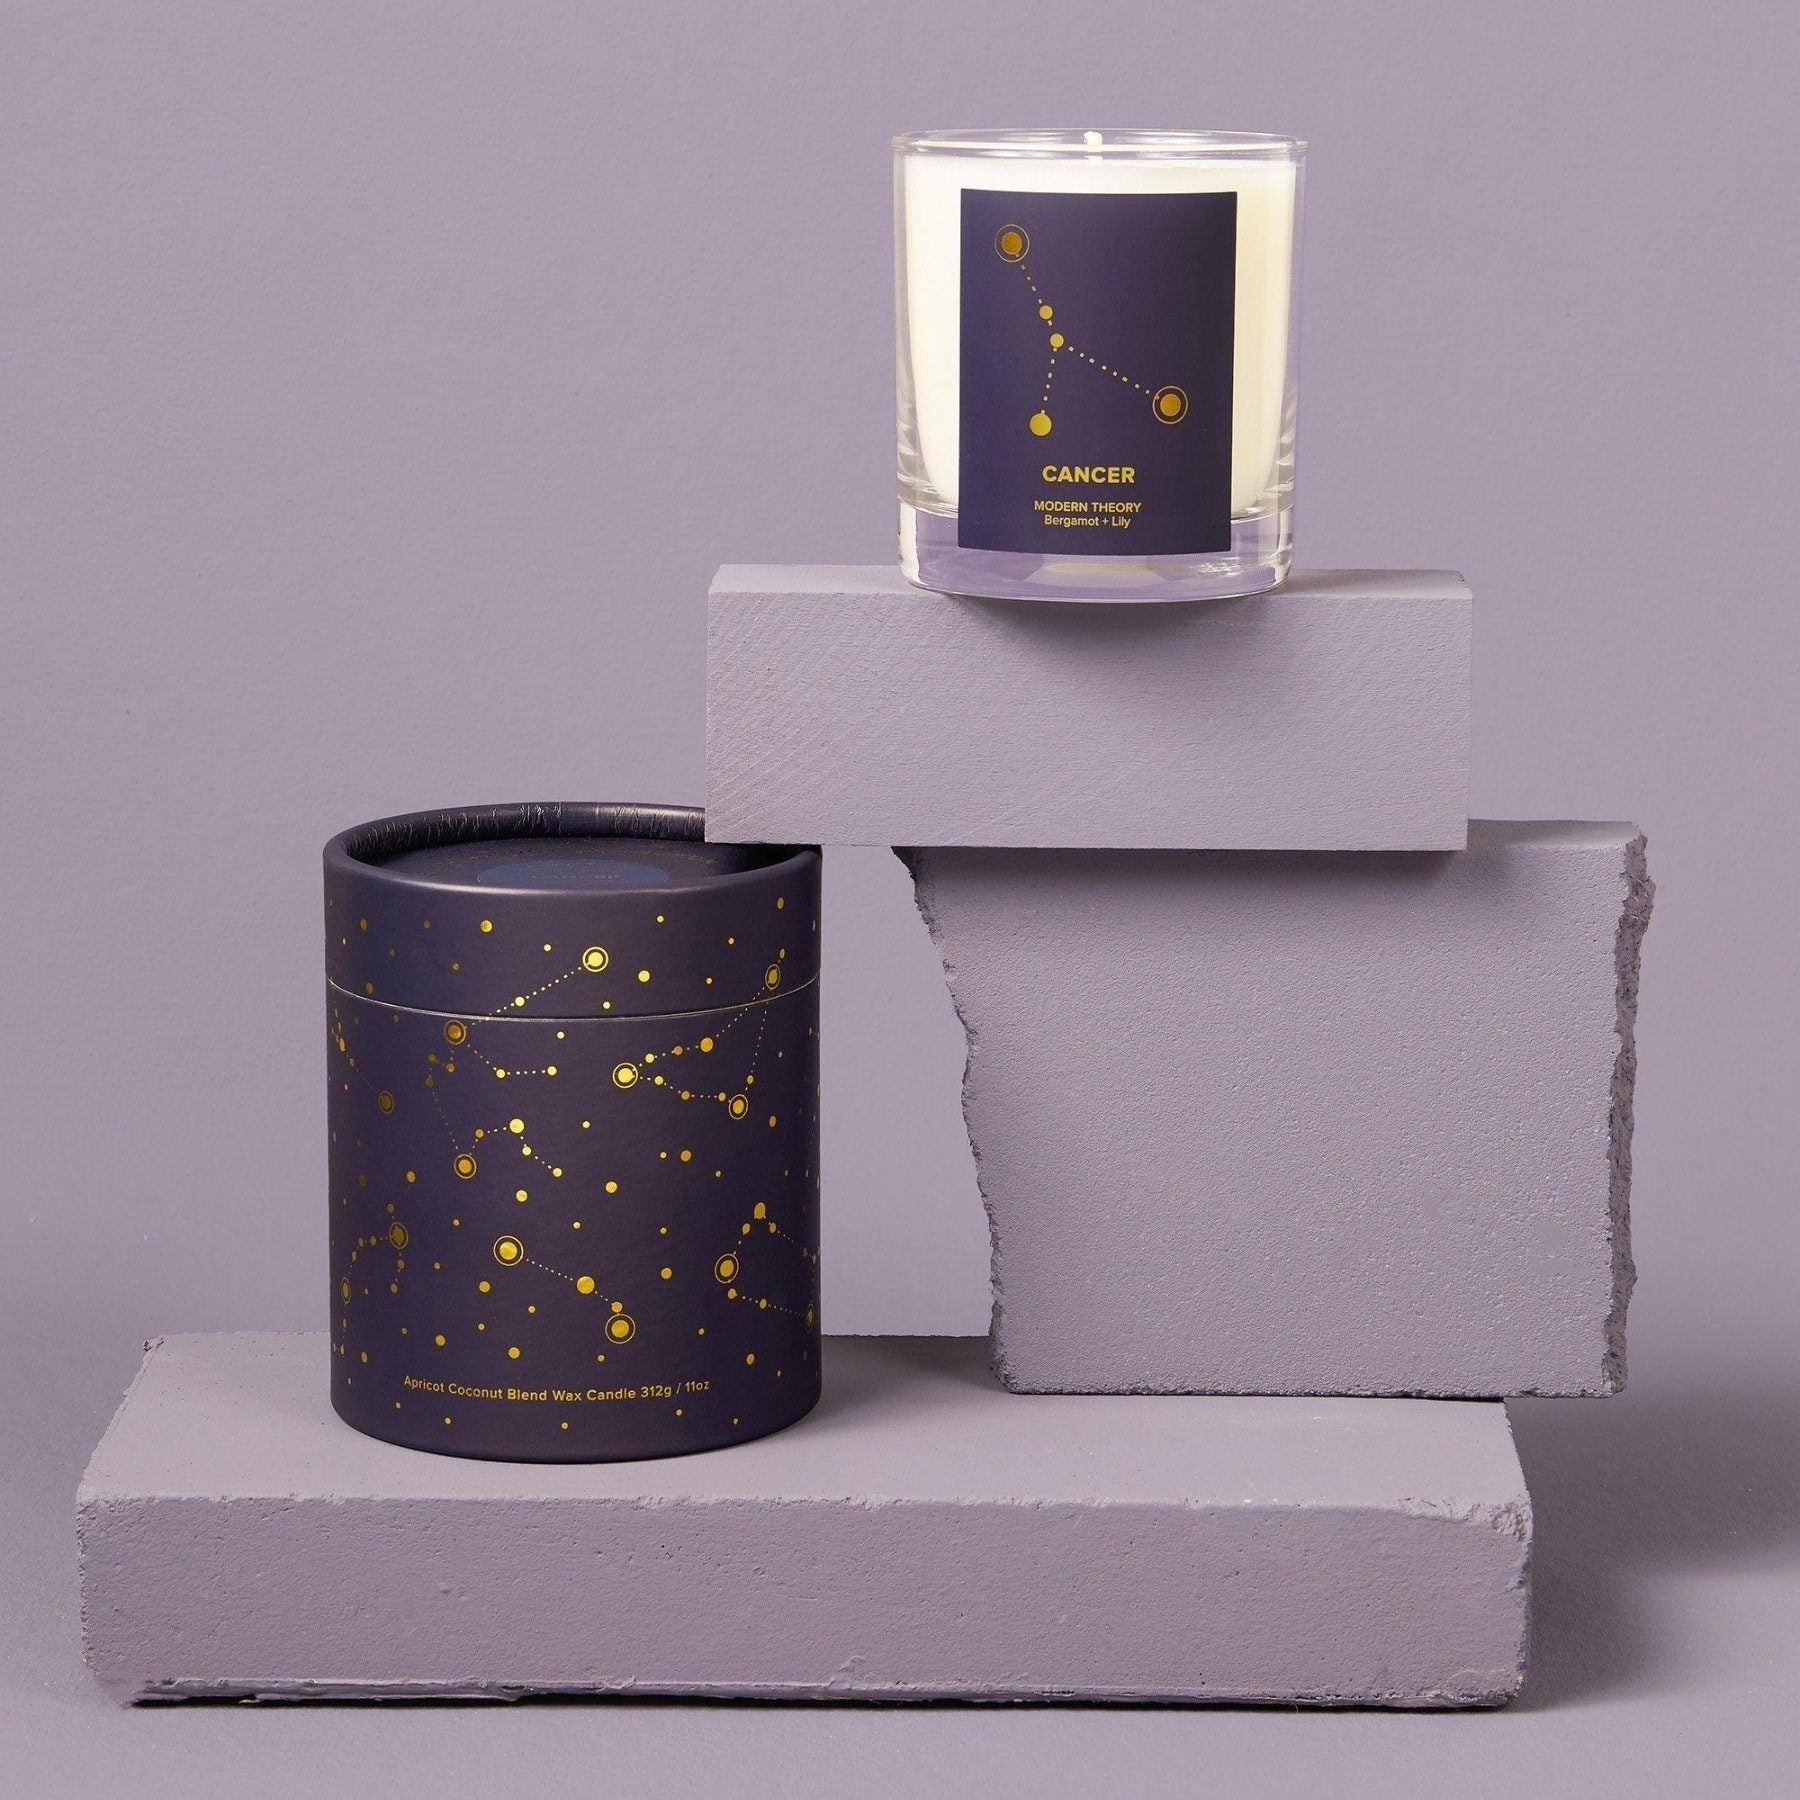 Candle in glass jar with purple and star label  with astrology sign cancer